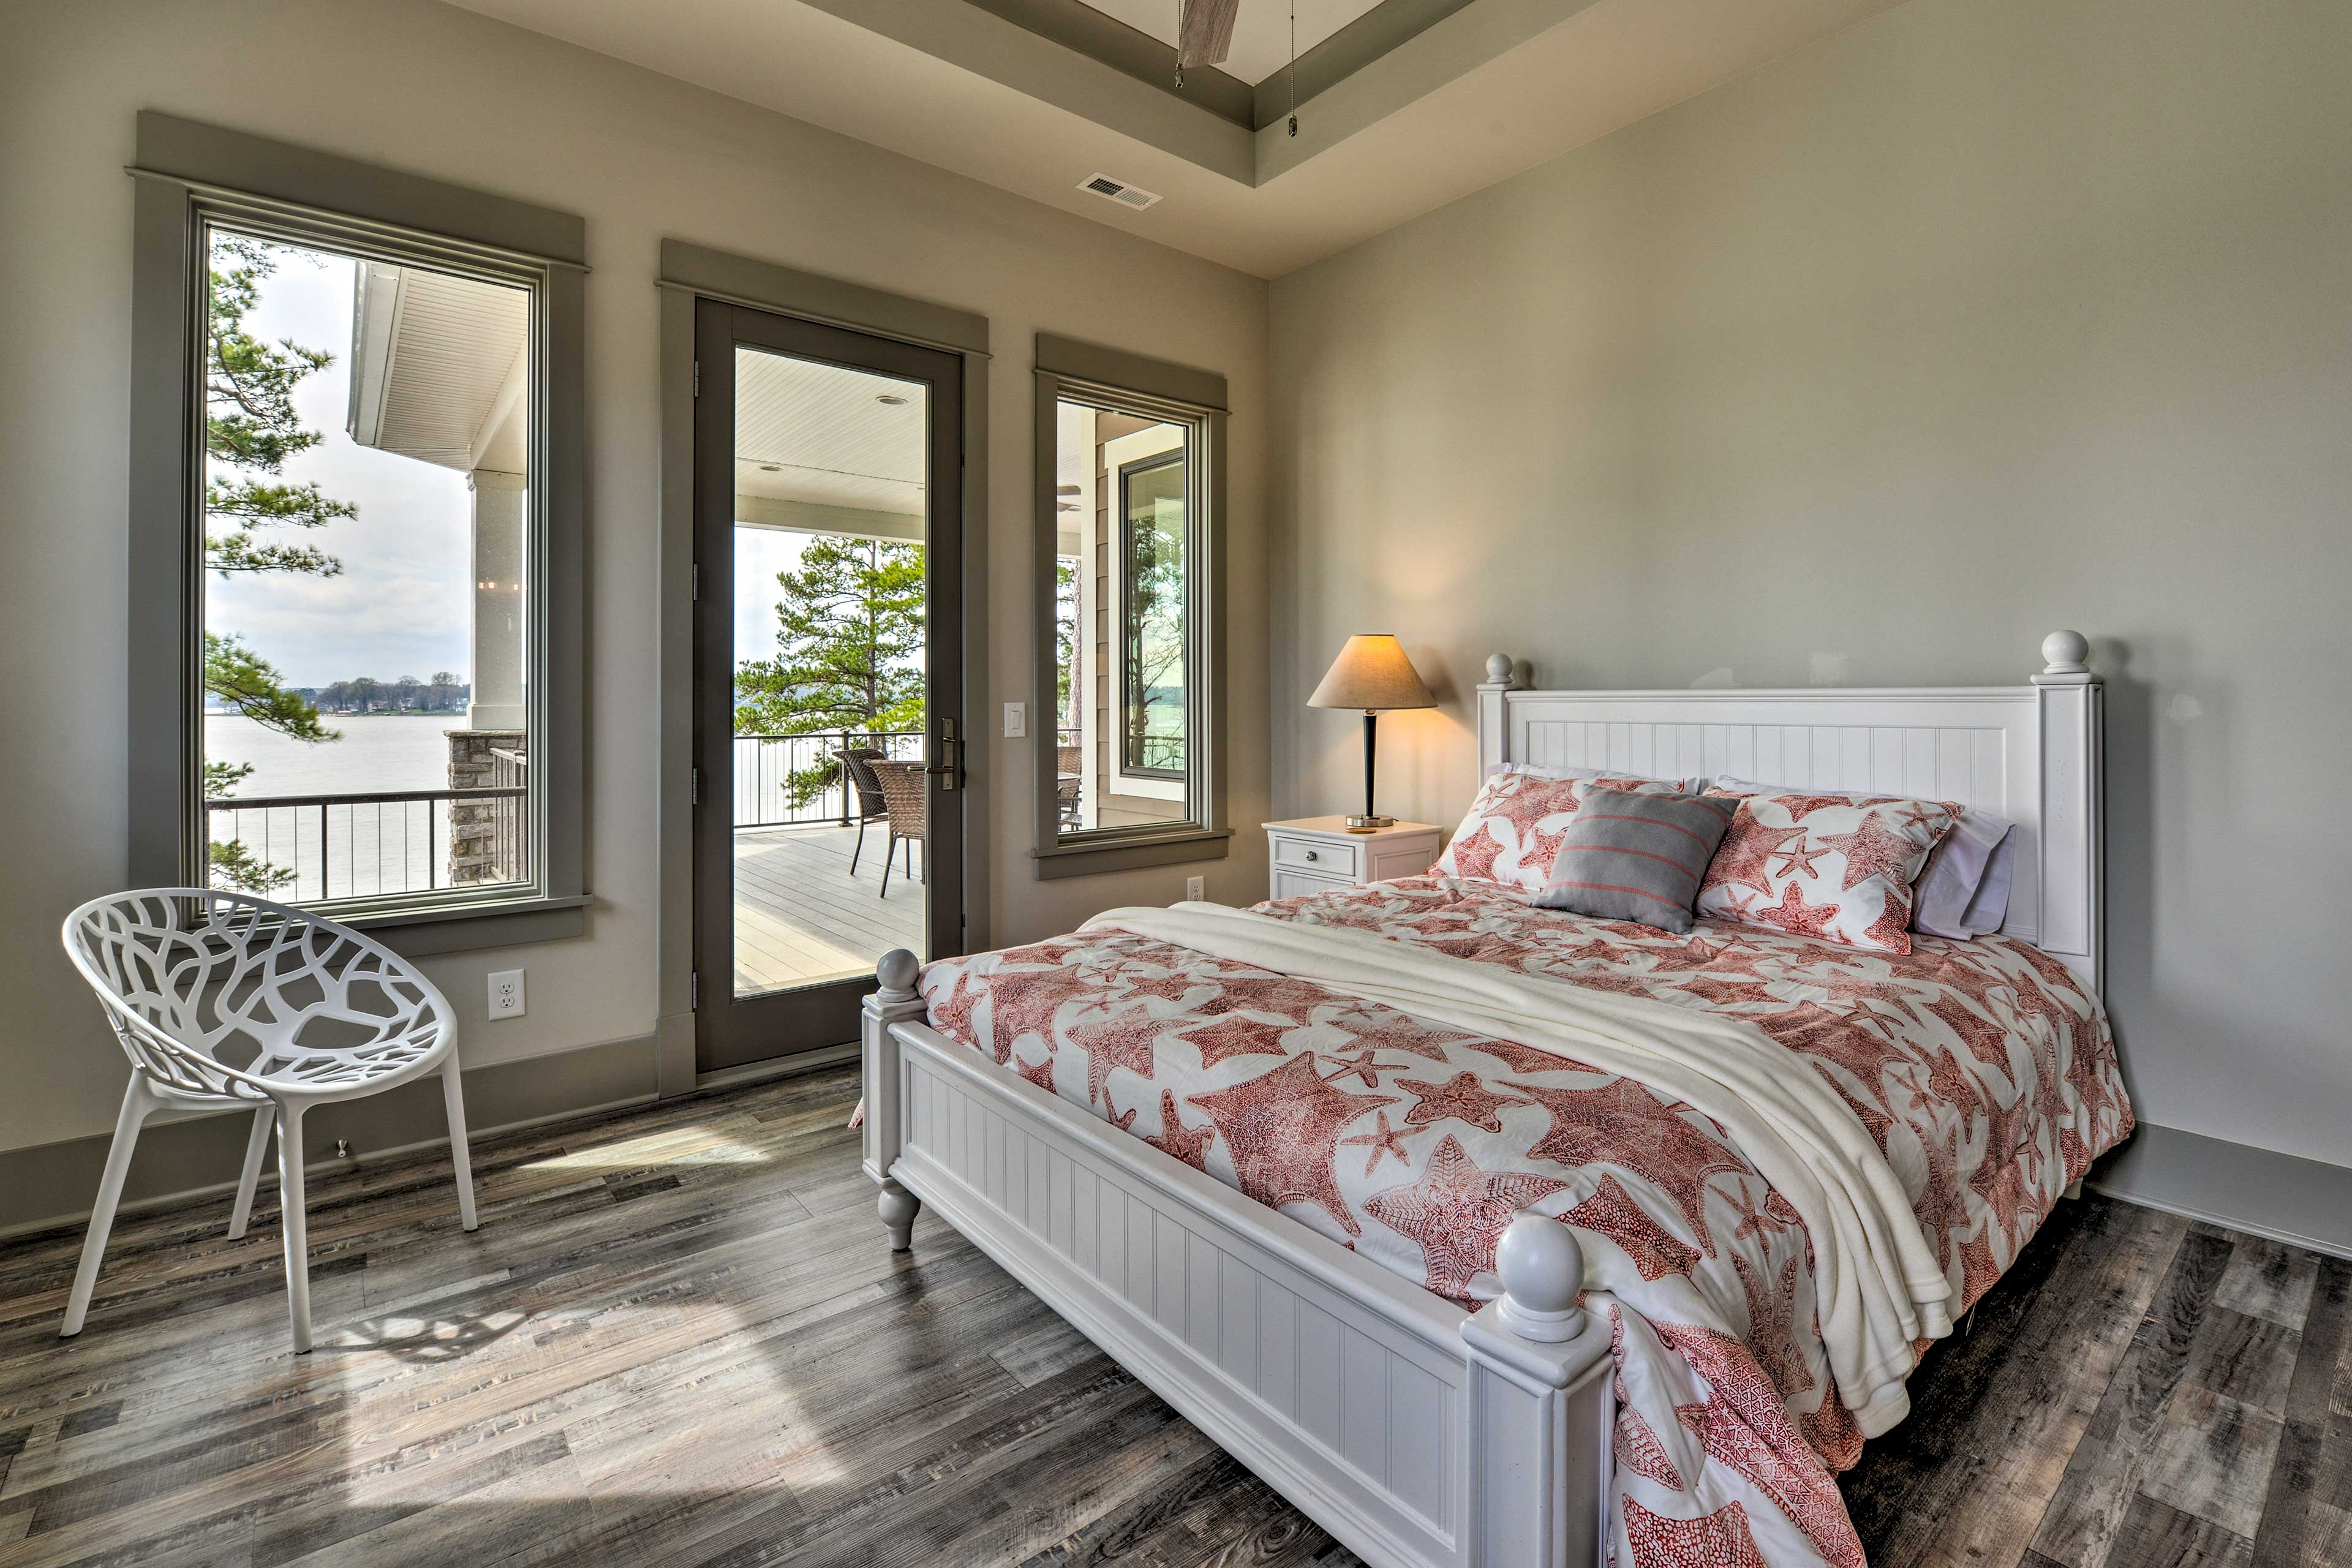 The second master bedroom features a queen-sized bed and access to the deck.